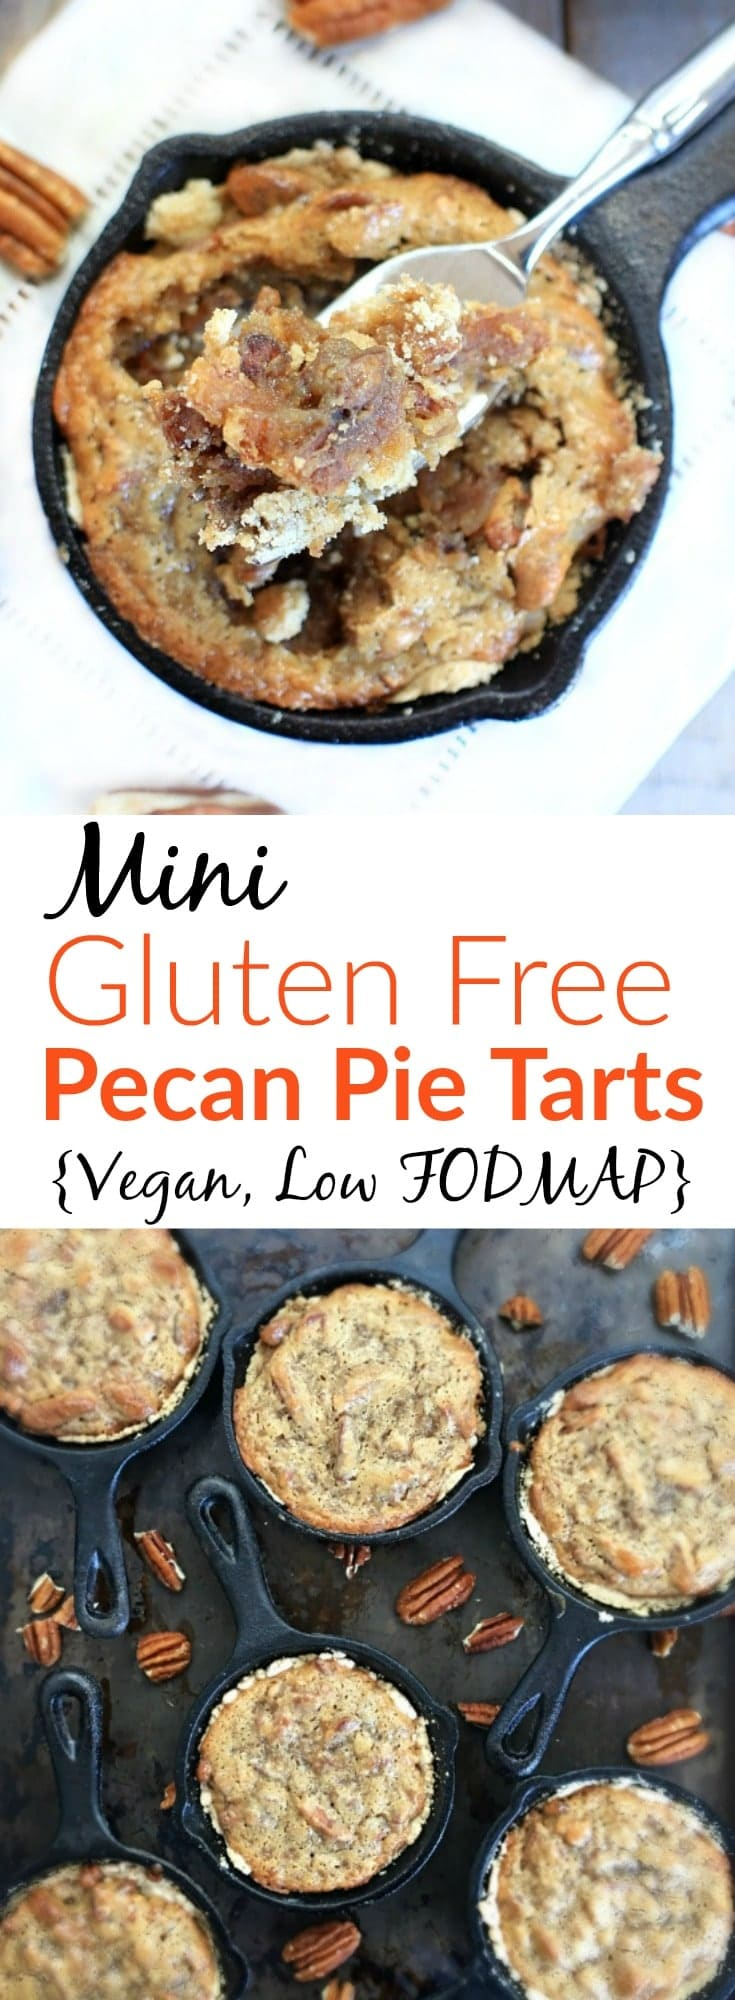 These Gluten Free Mini Pecan Pie Tarts get rave reviews! Perfect for the holidays, they're also vegan, low FODMAP, and a little bit healthy too! #ThanksgivingRecipes #glutenfreevegan #lowFODMAP #Christmas